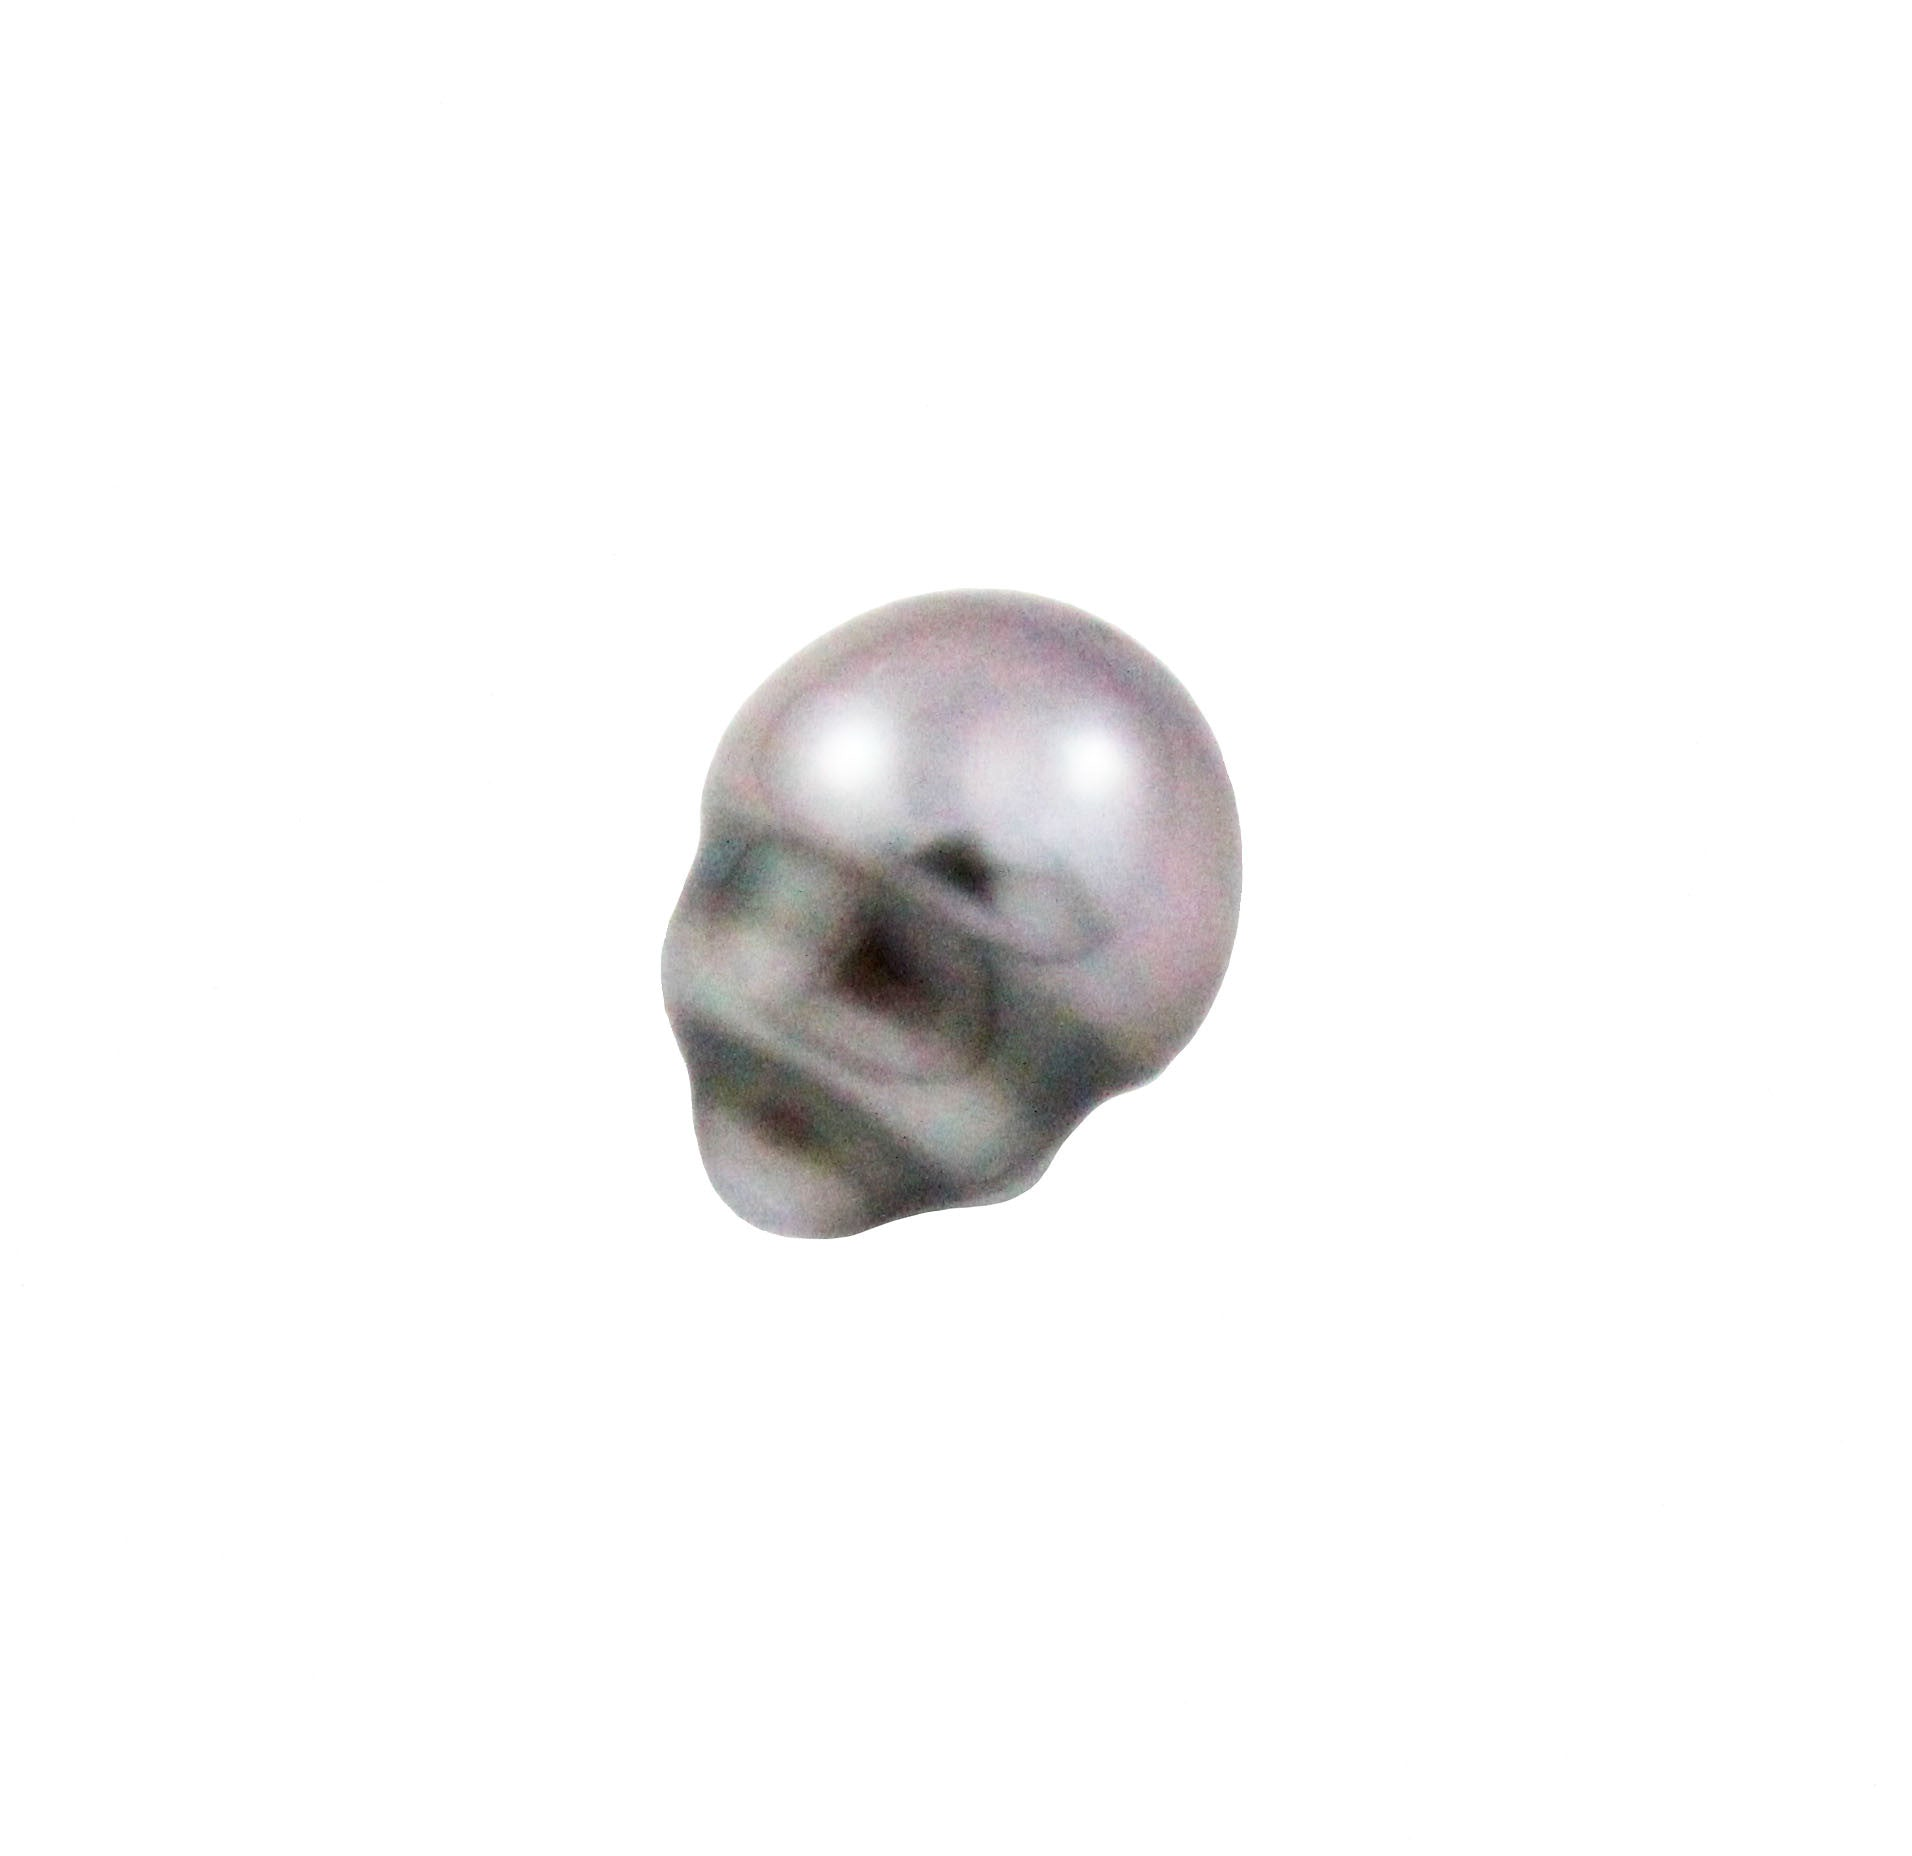 Tahitian pearl undrilled 1.00gr mm 10.8x8.3mm - Purchase only with custom order - Sarah Hughes - 2